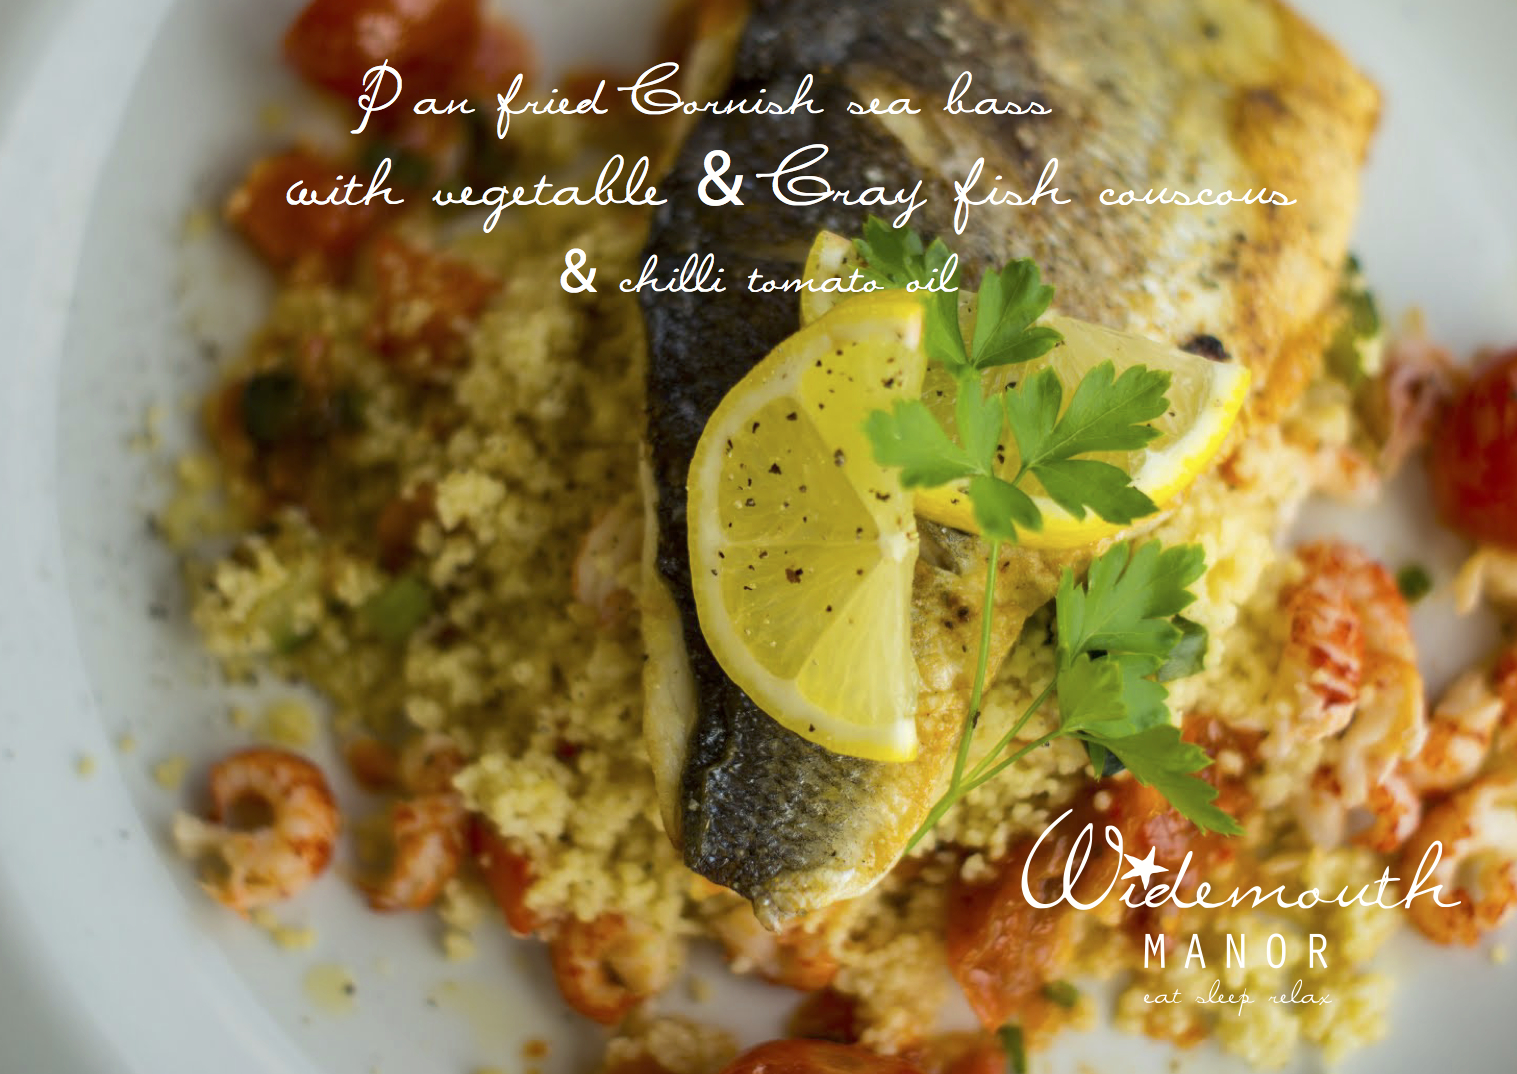 F Widemouth Manor postcard overhead view pan fried sea bass .jpg